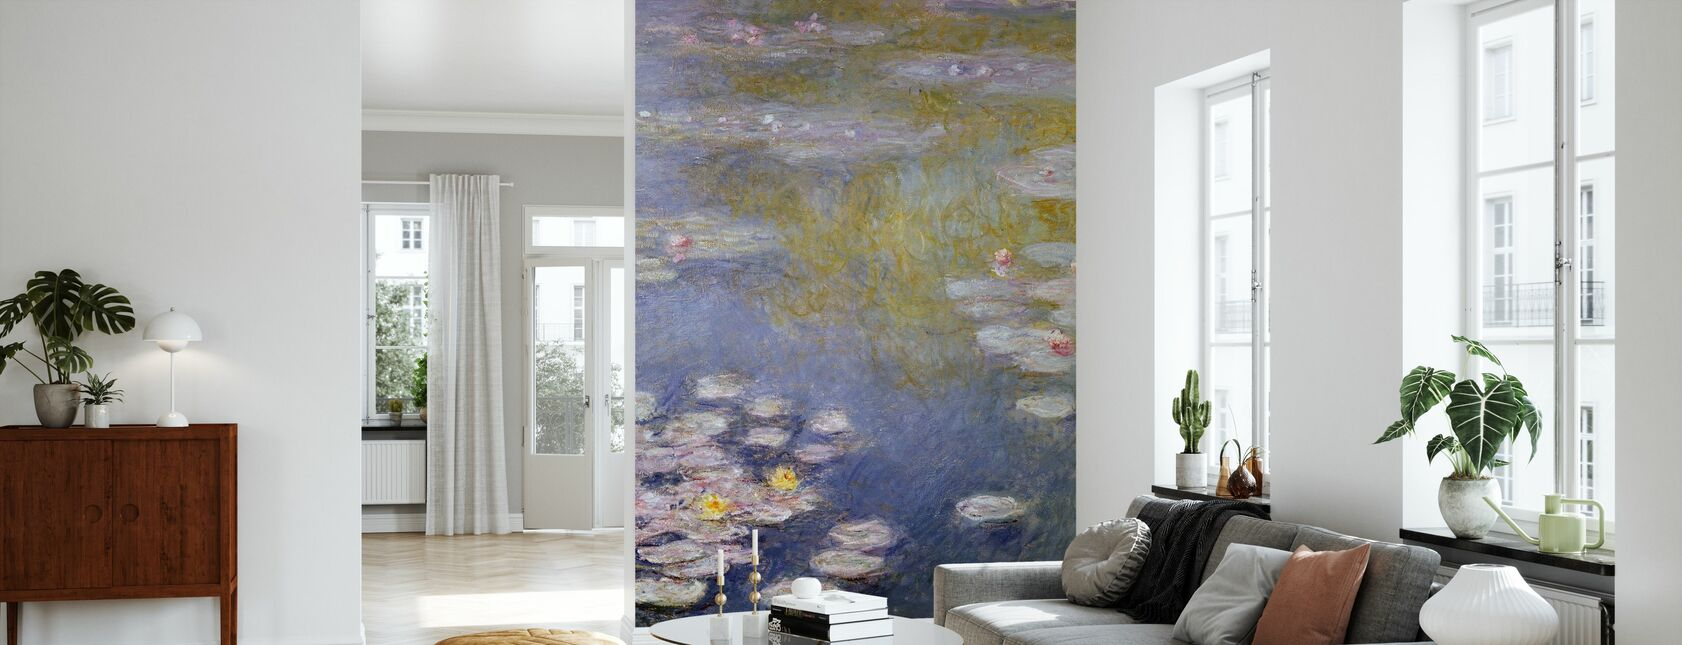 Monet, Claude - Nympheas at Giverny - Wallpaper - Living Room